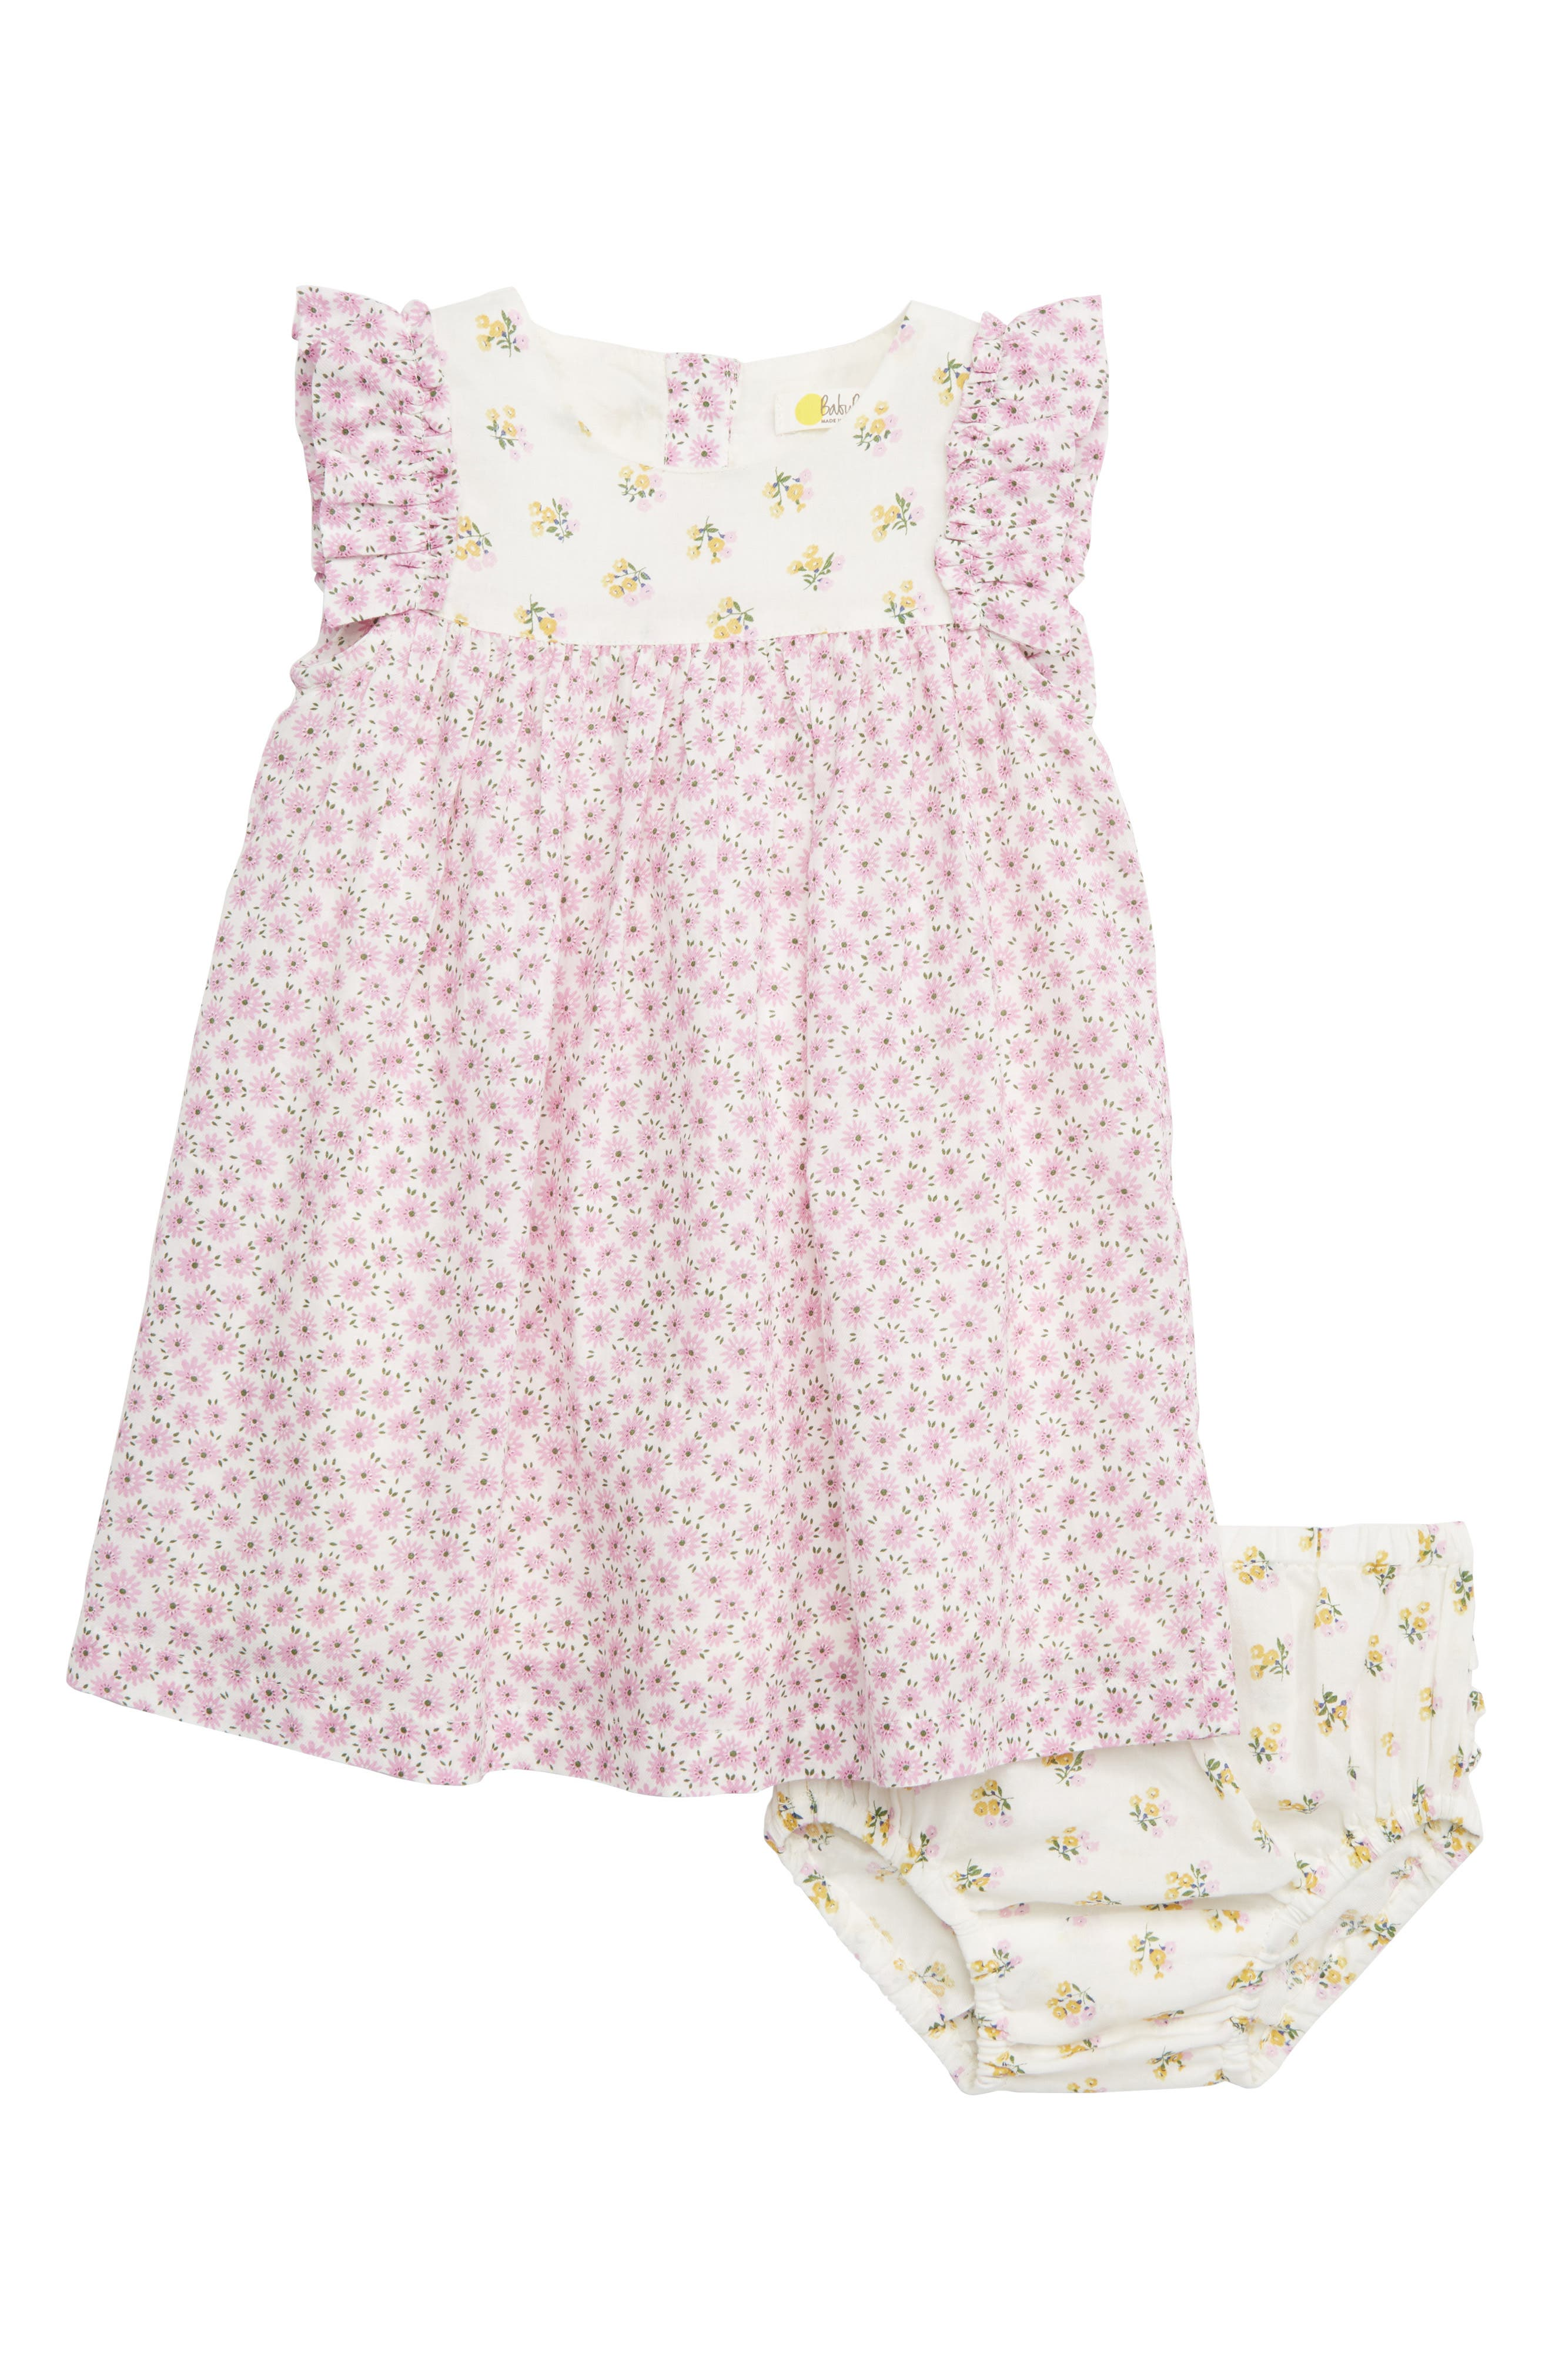 MINI BODEN Mixed Floral Print Woven Dress, Main, color, PRP LILAC PINK BLOSSOM